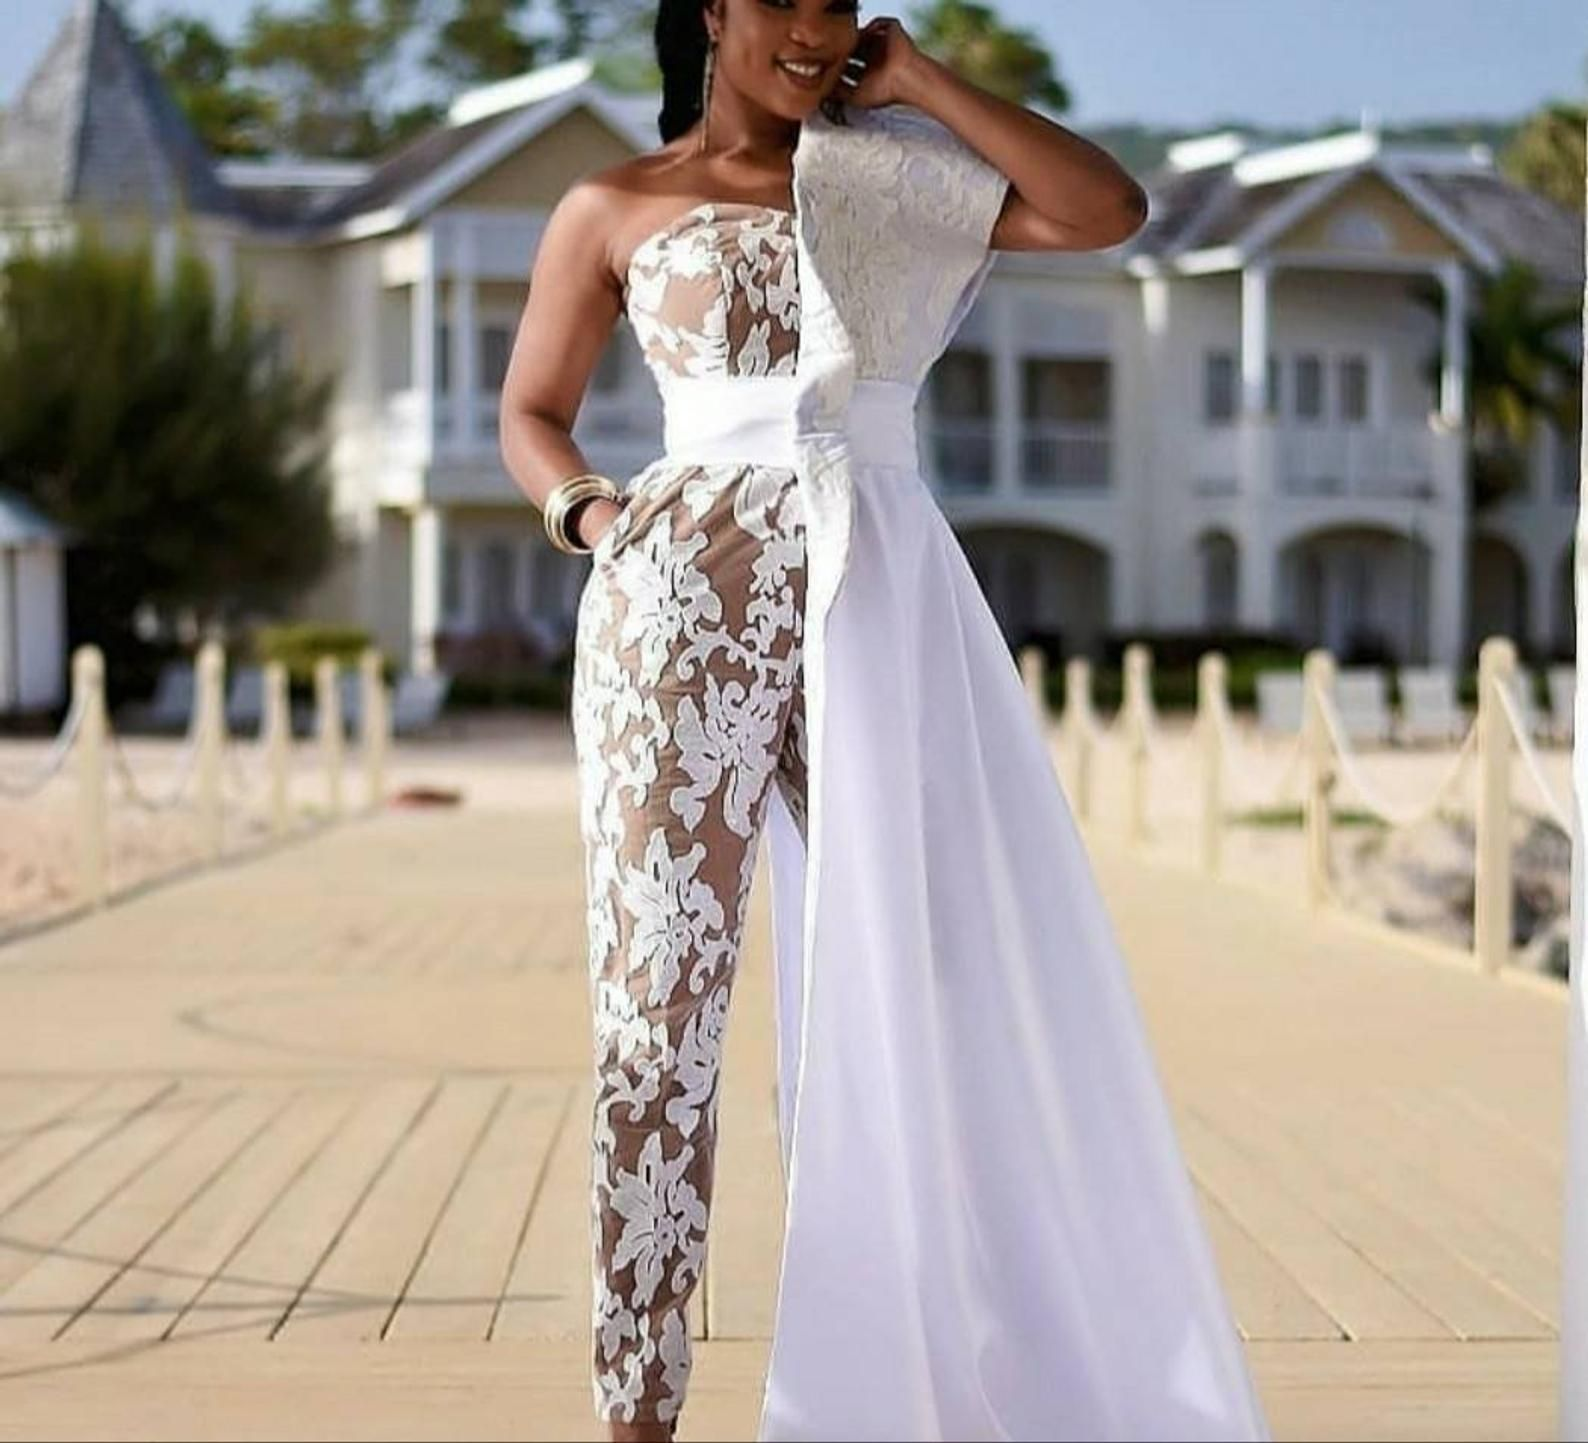 34+ Wedding guest jumpsuit with train ideas